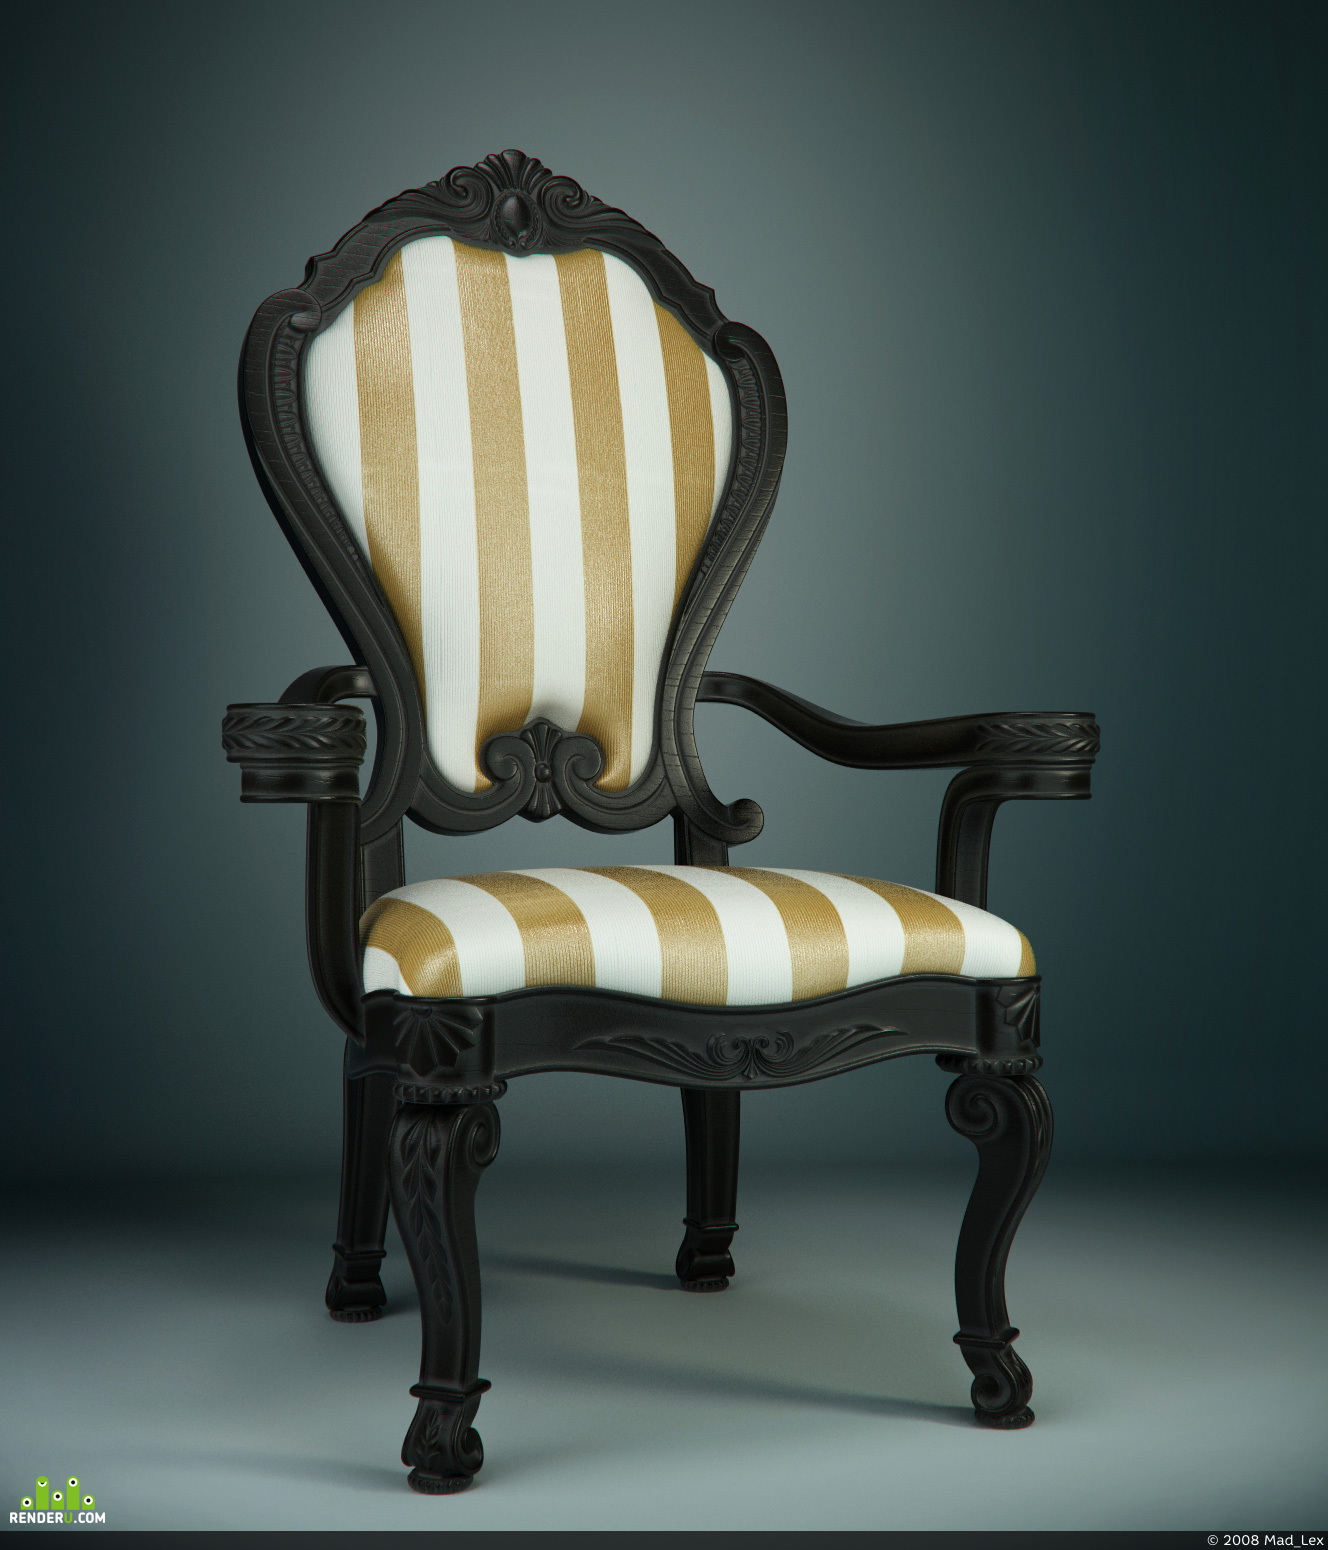 preview Antique chair